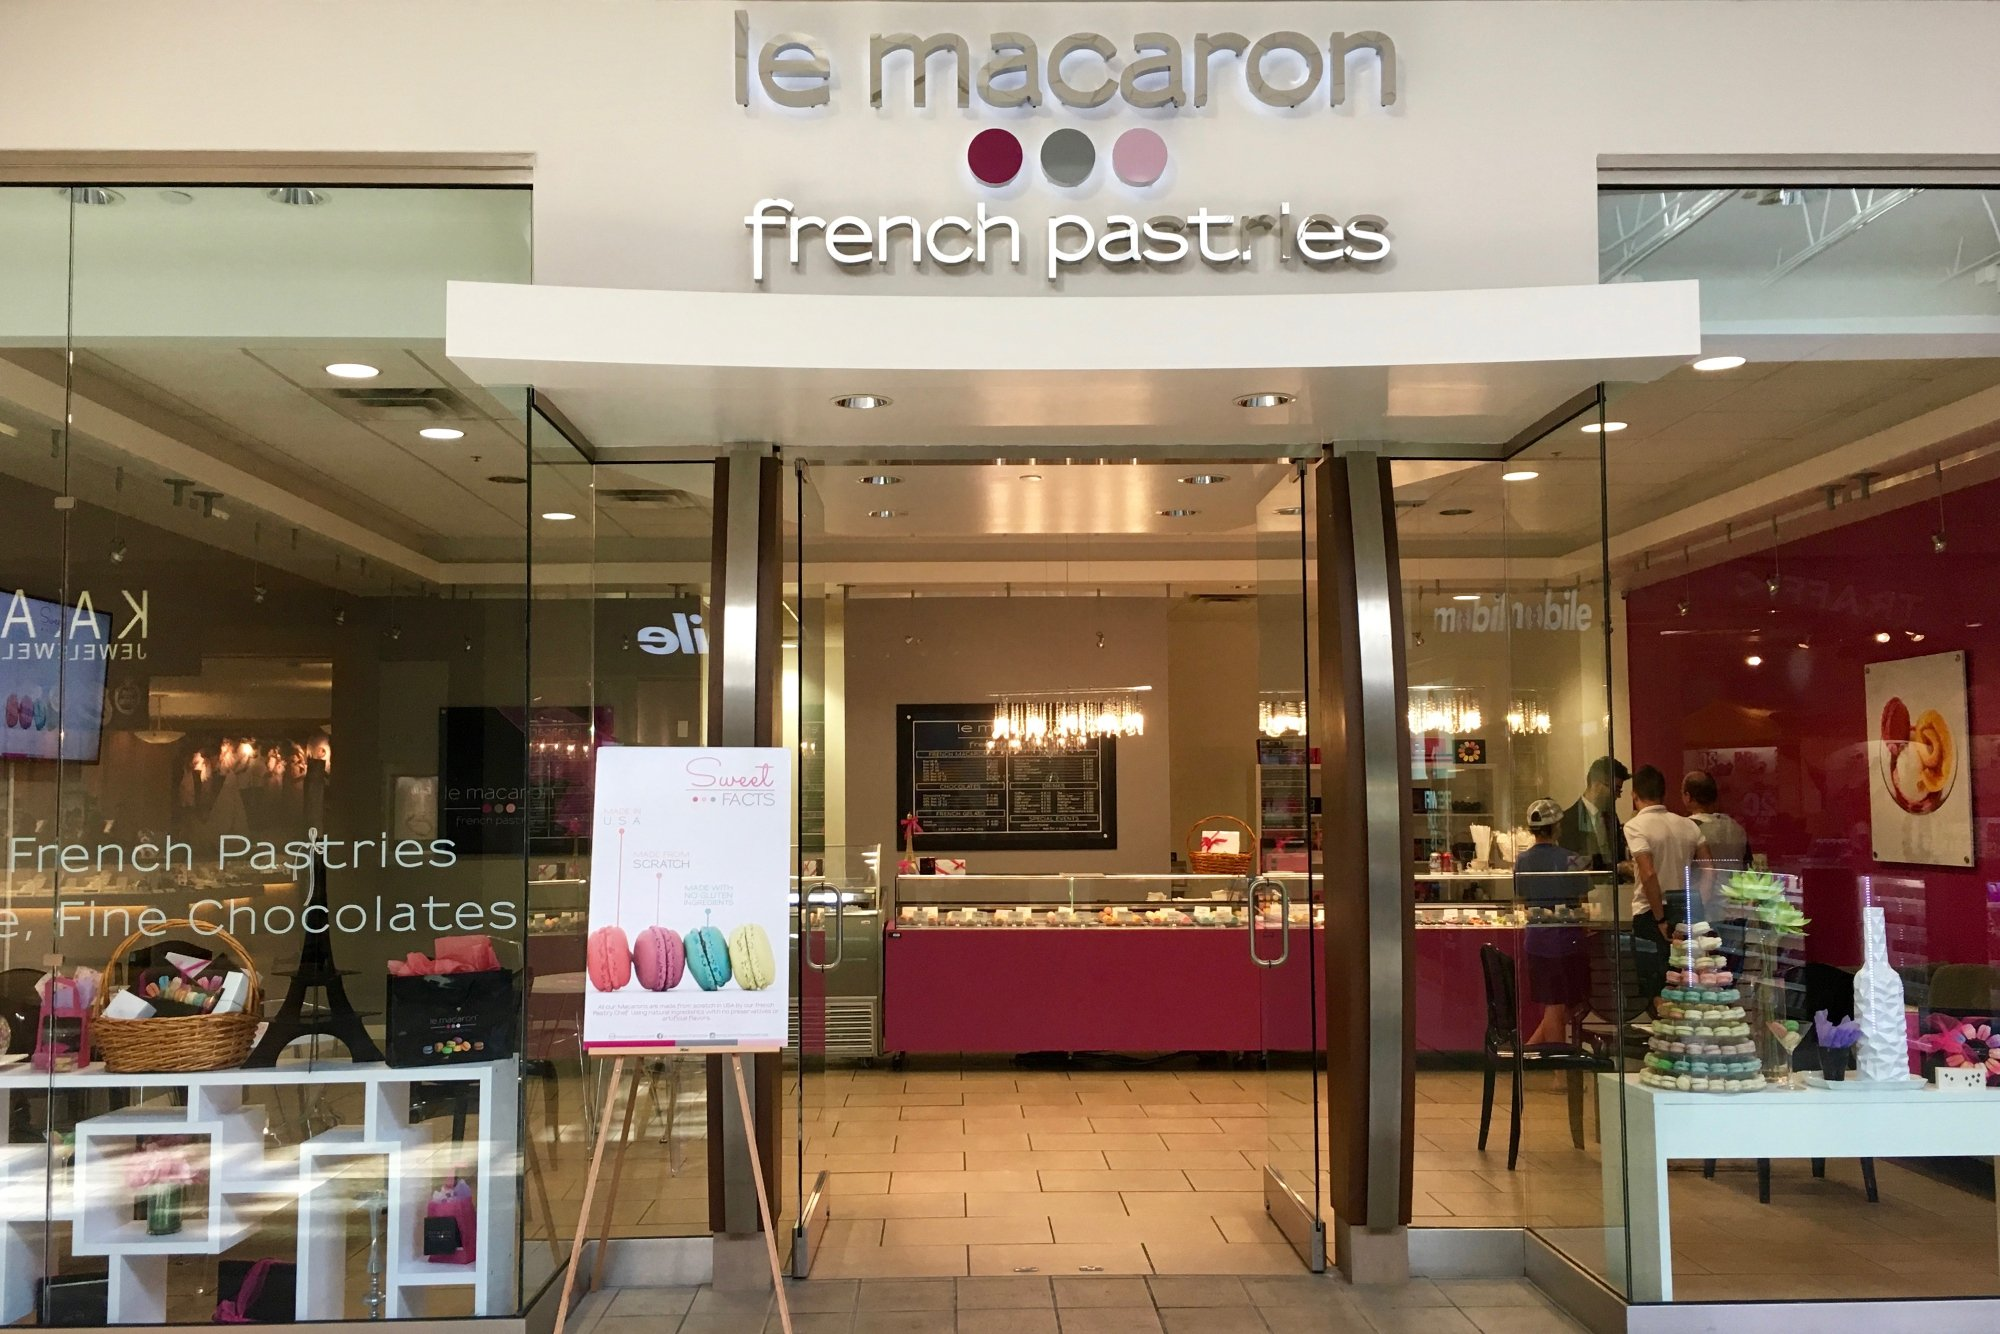 Le Macaron French Pastries 6901 22nd Ave N, St. Petersburg